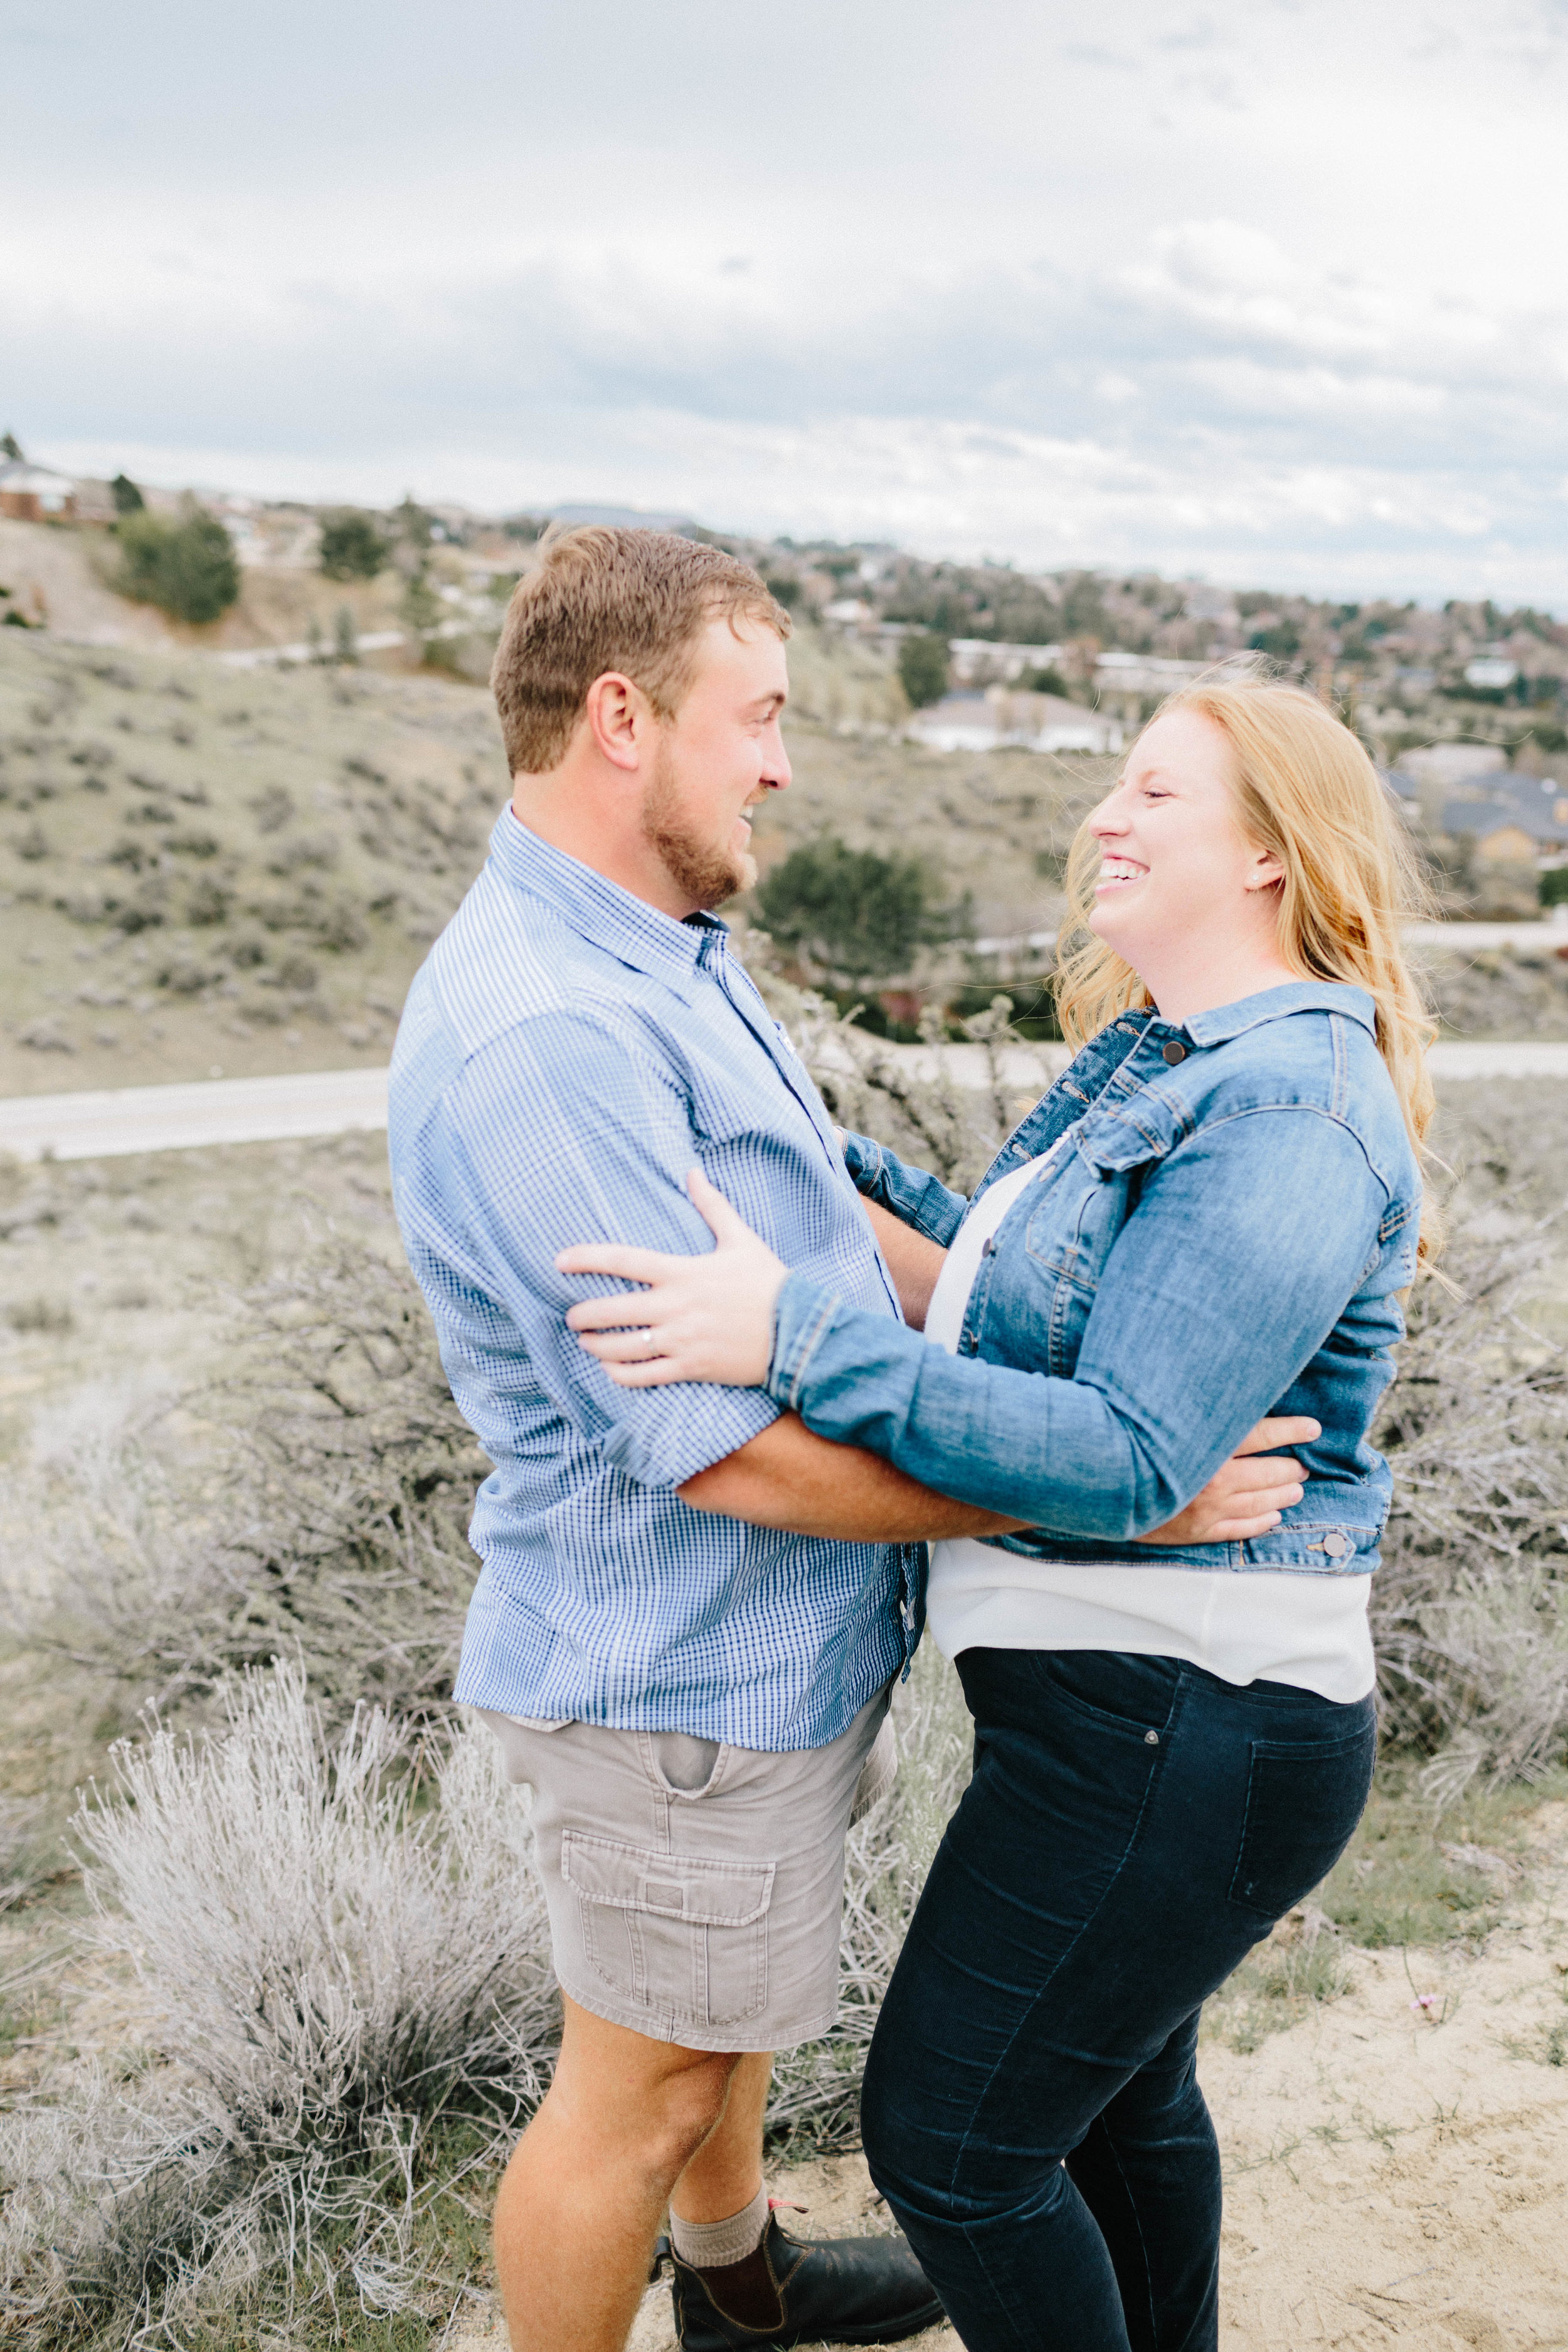 Rohan-and-Lydia-Boise-Foothills-Engagement-Session-50.jpg